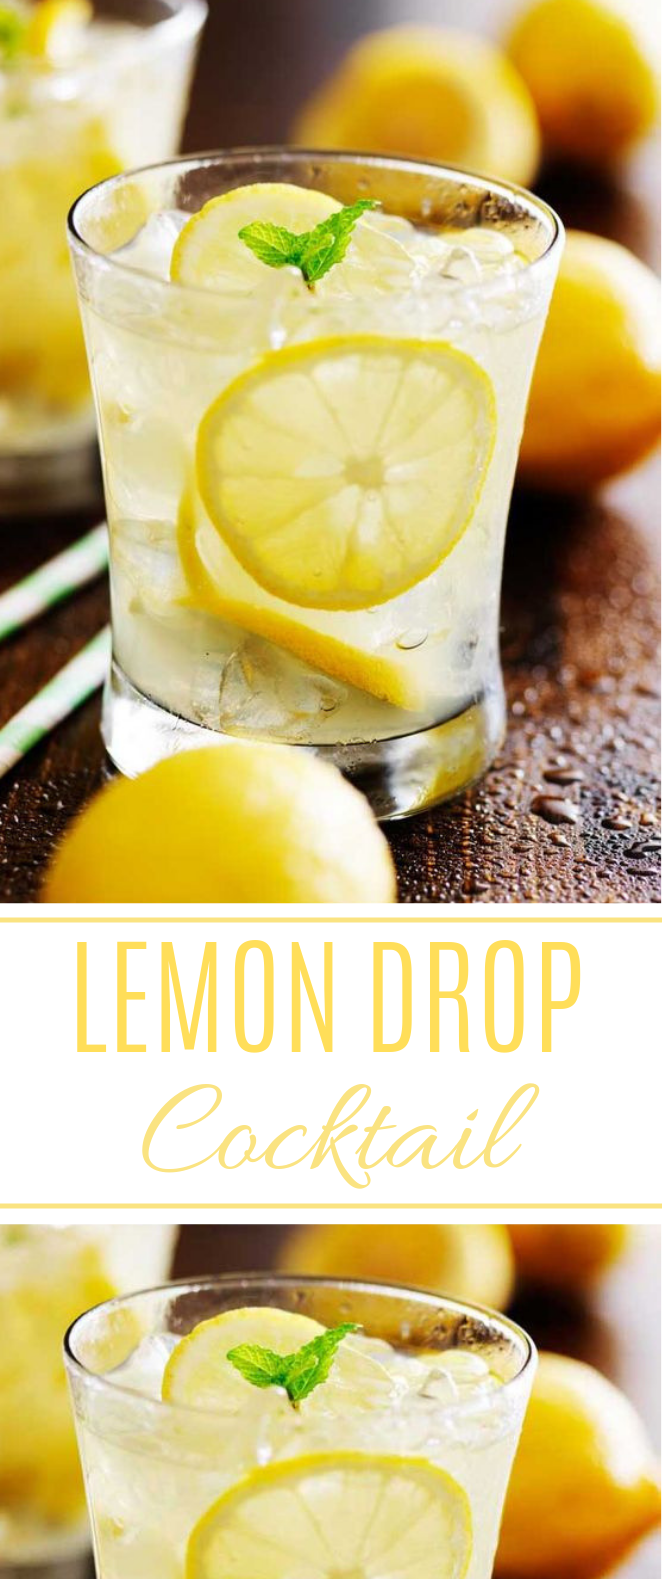 Lemon Drop Cocktail #summer #drinks